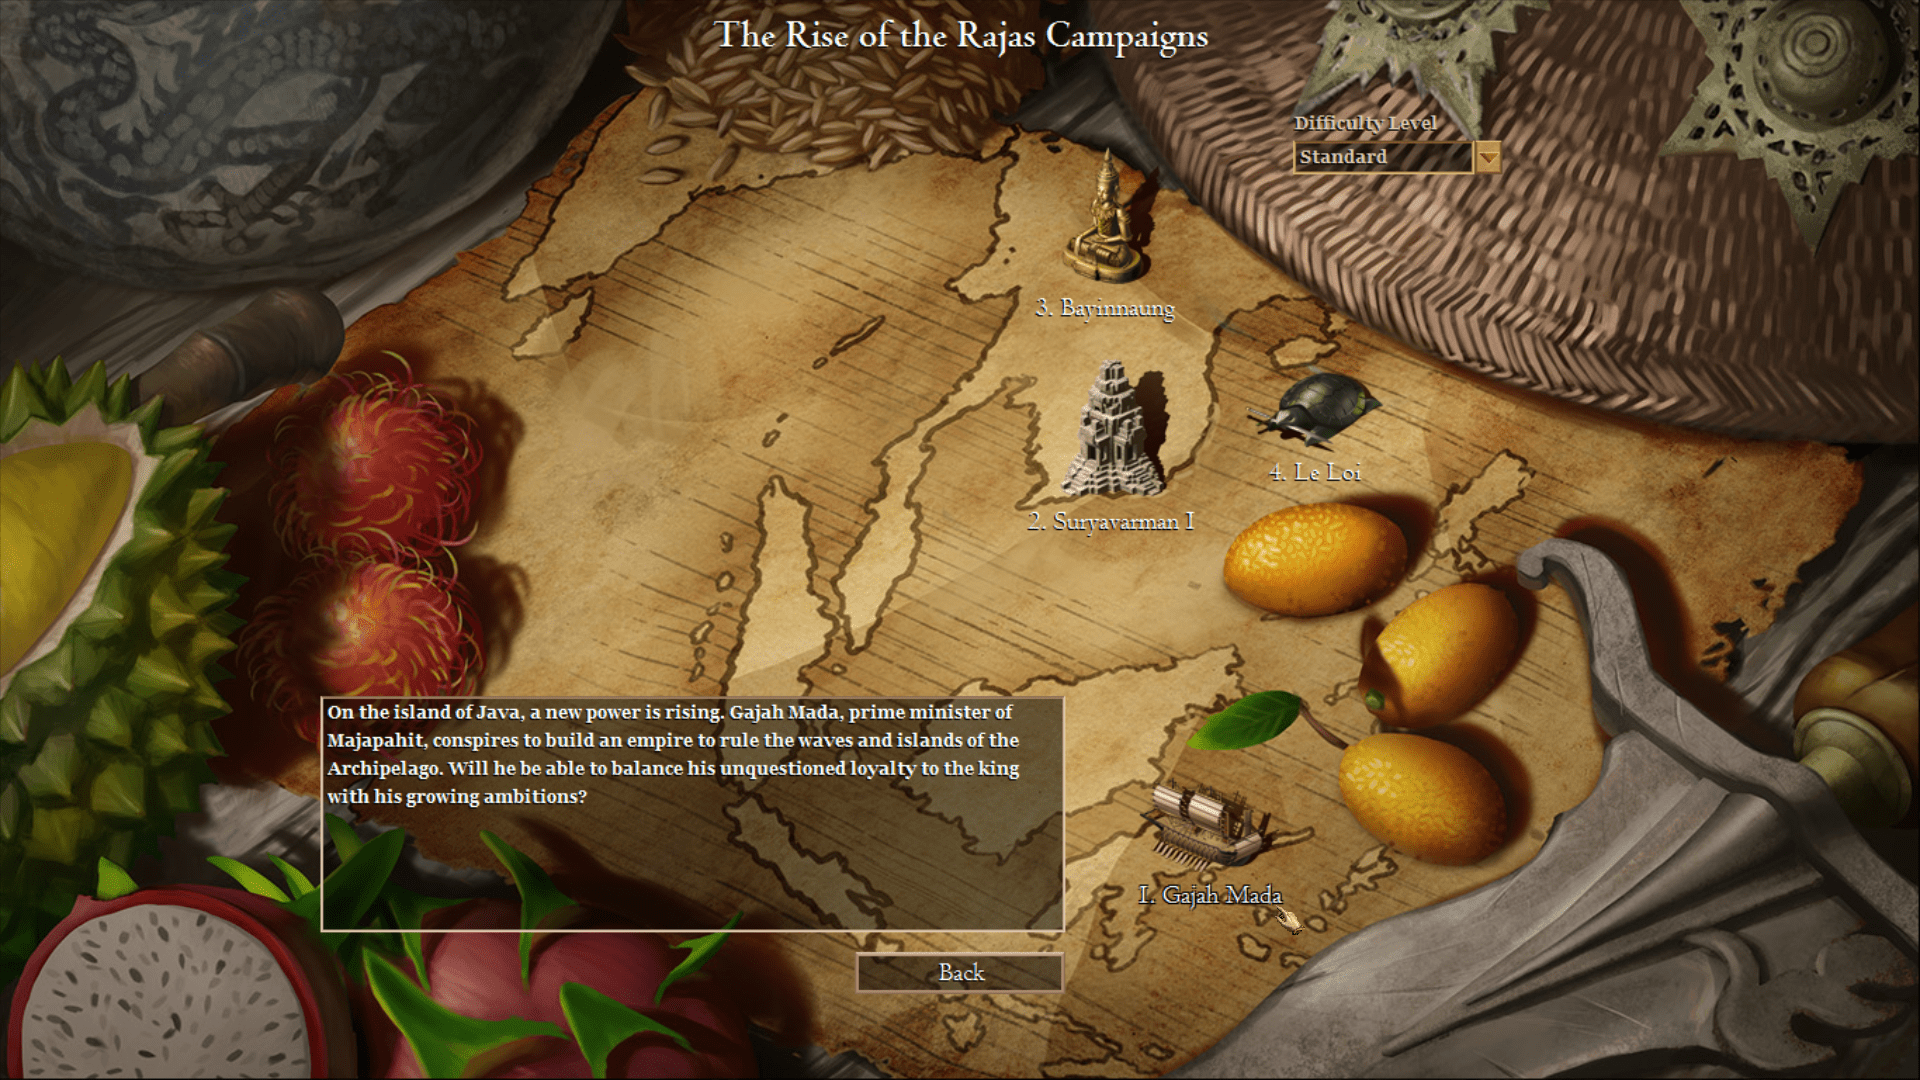 http://www.forgottenempires.net/wp-content/uploads/aor_campaign_screen.png